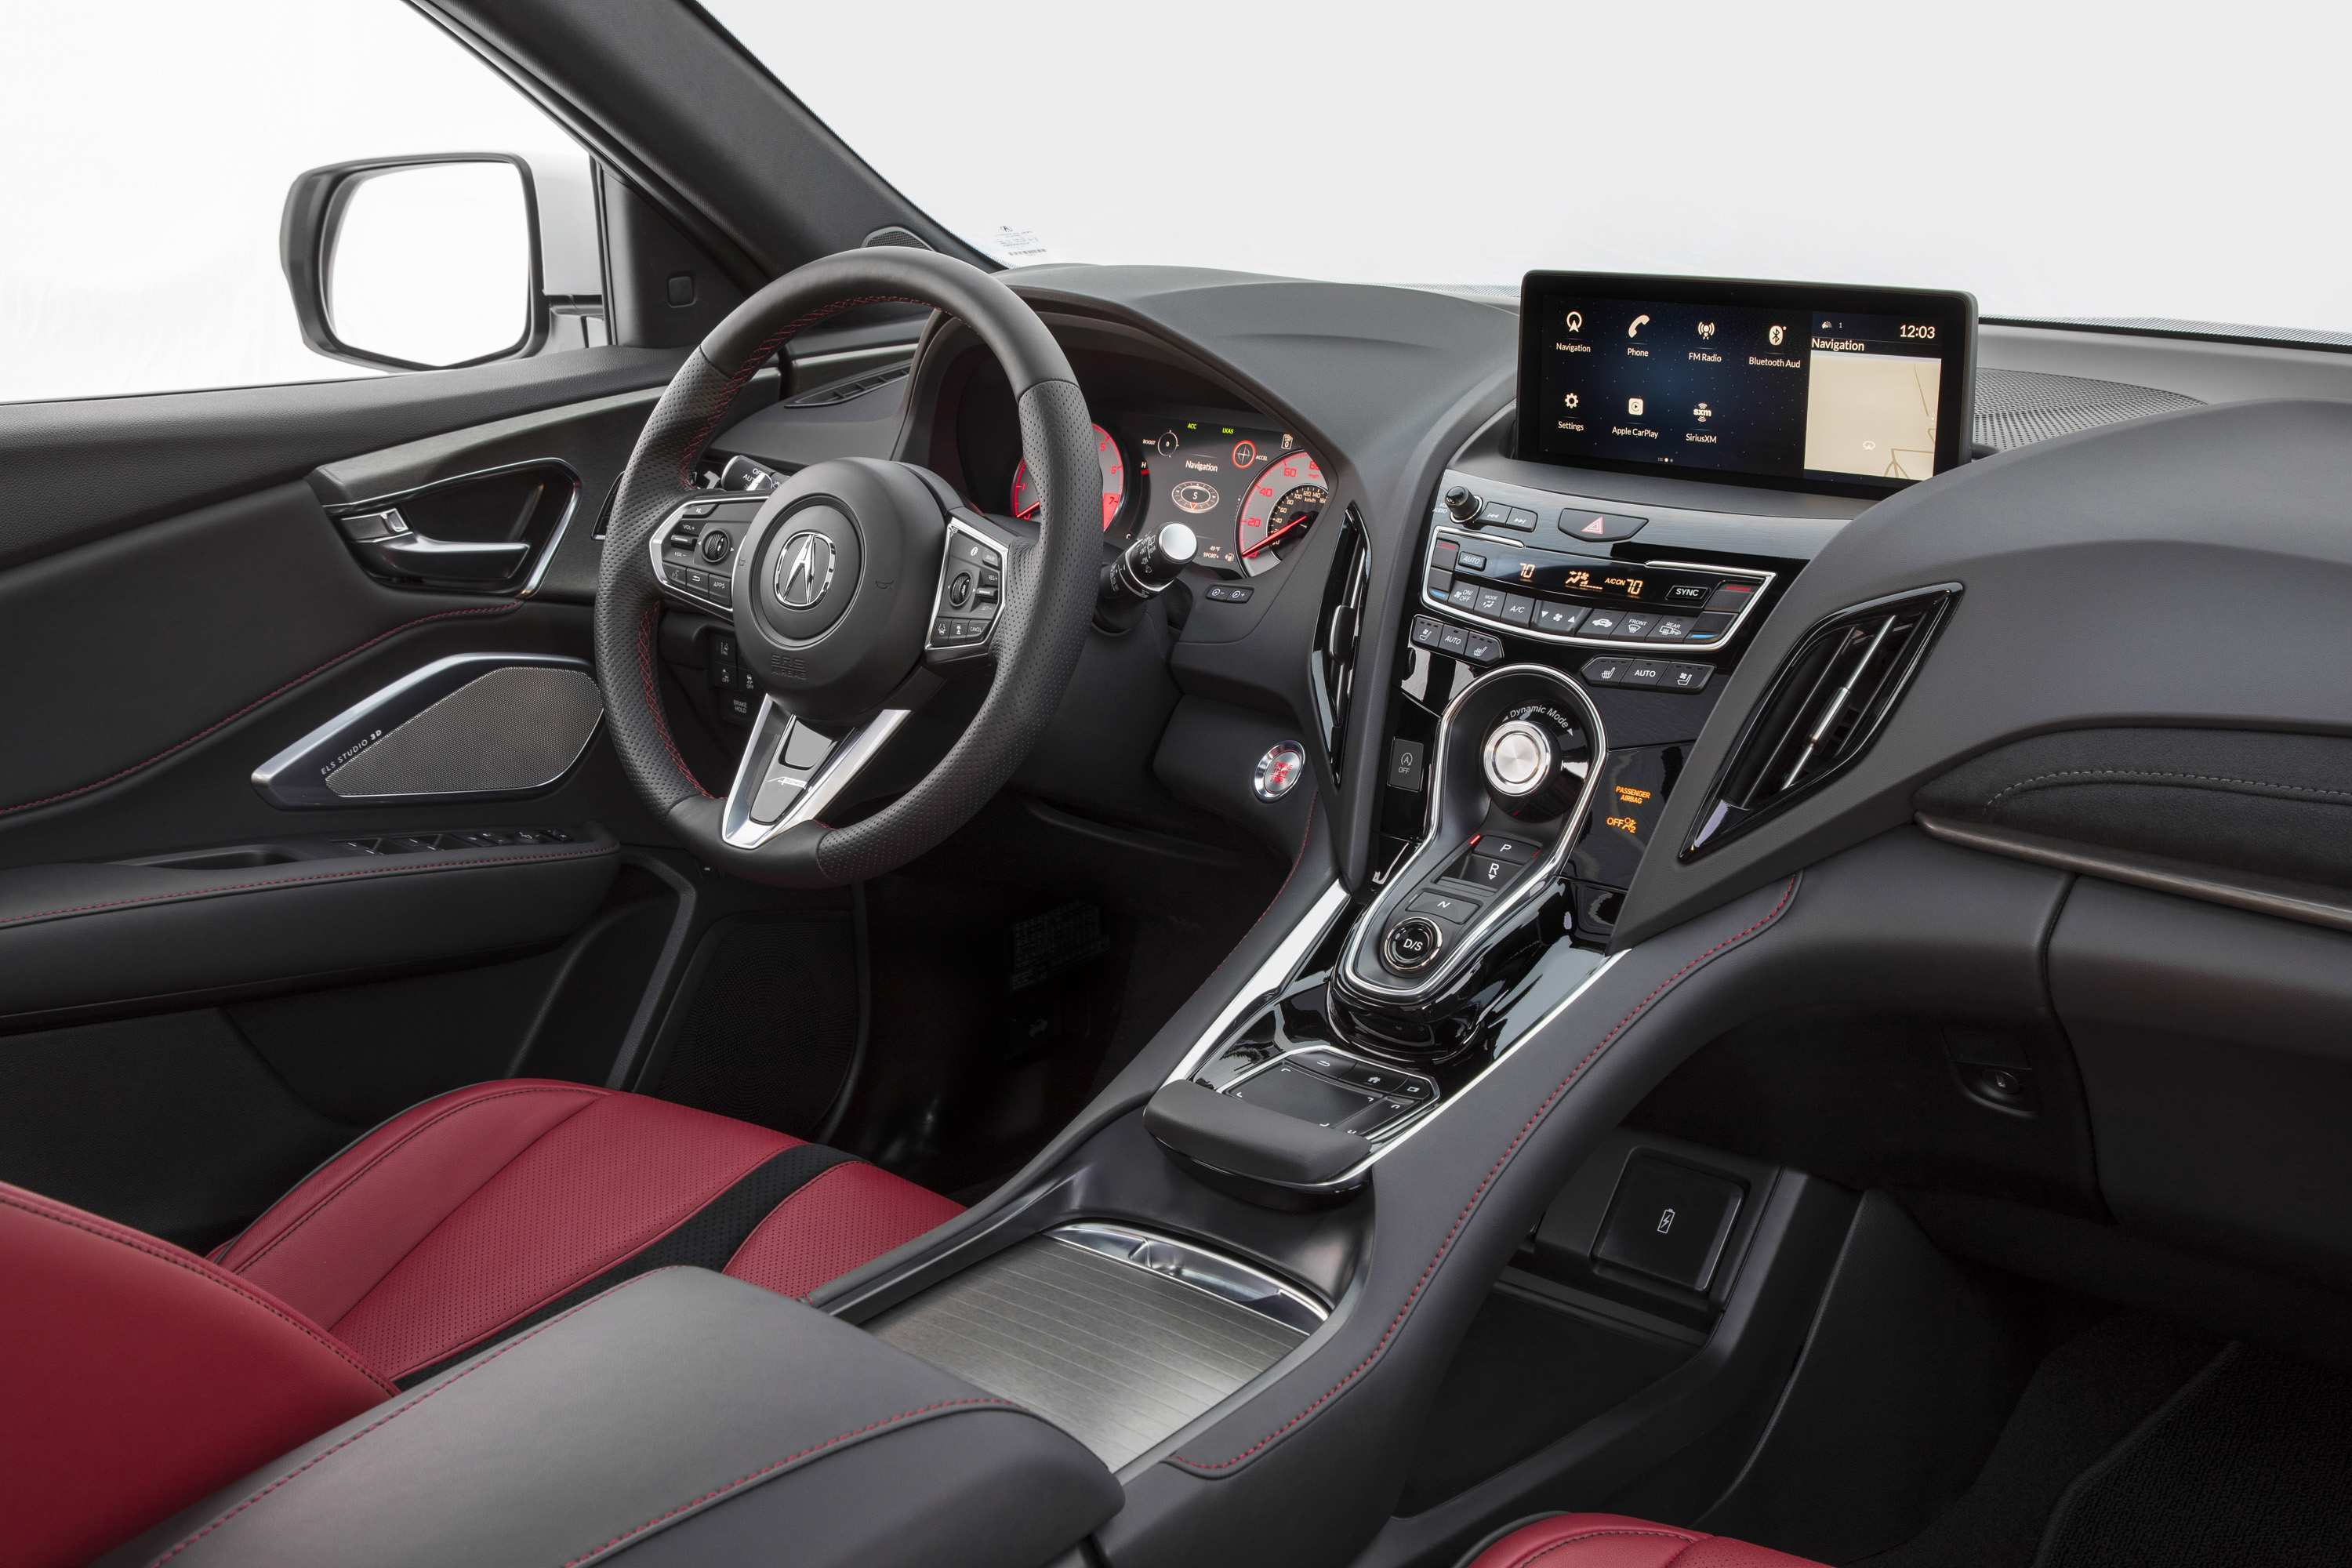 93 Great The Acura Zdx 2019 Price First Drive Price by The Acura Zdx 2019 Price First Drive